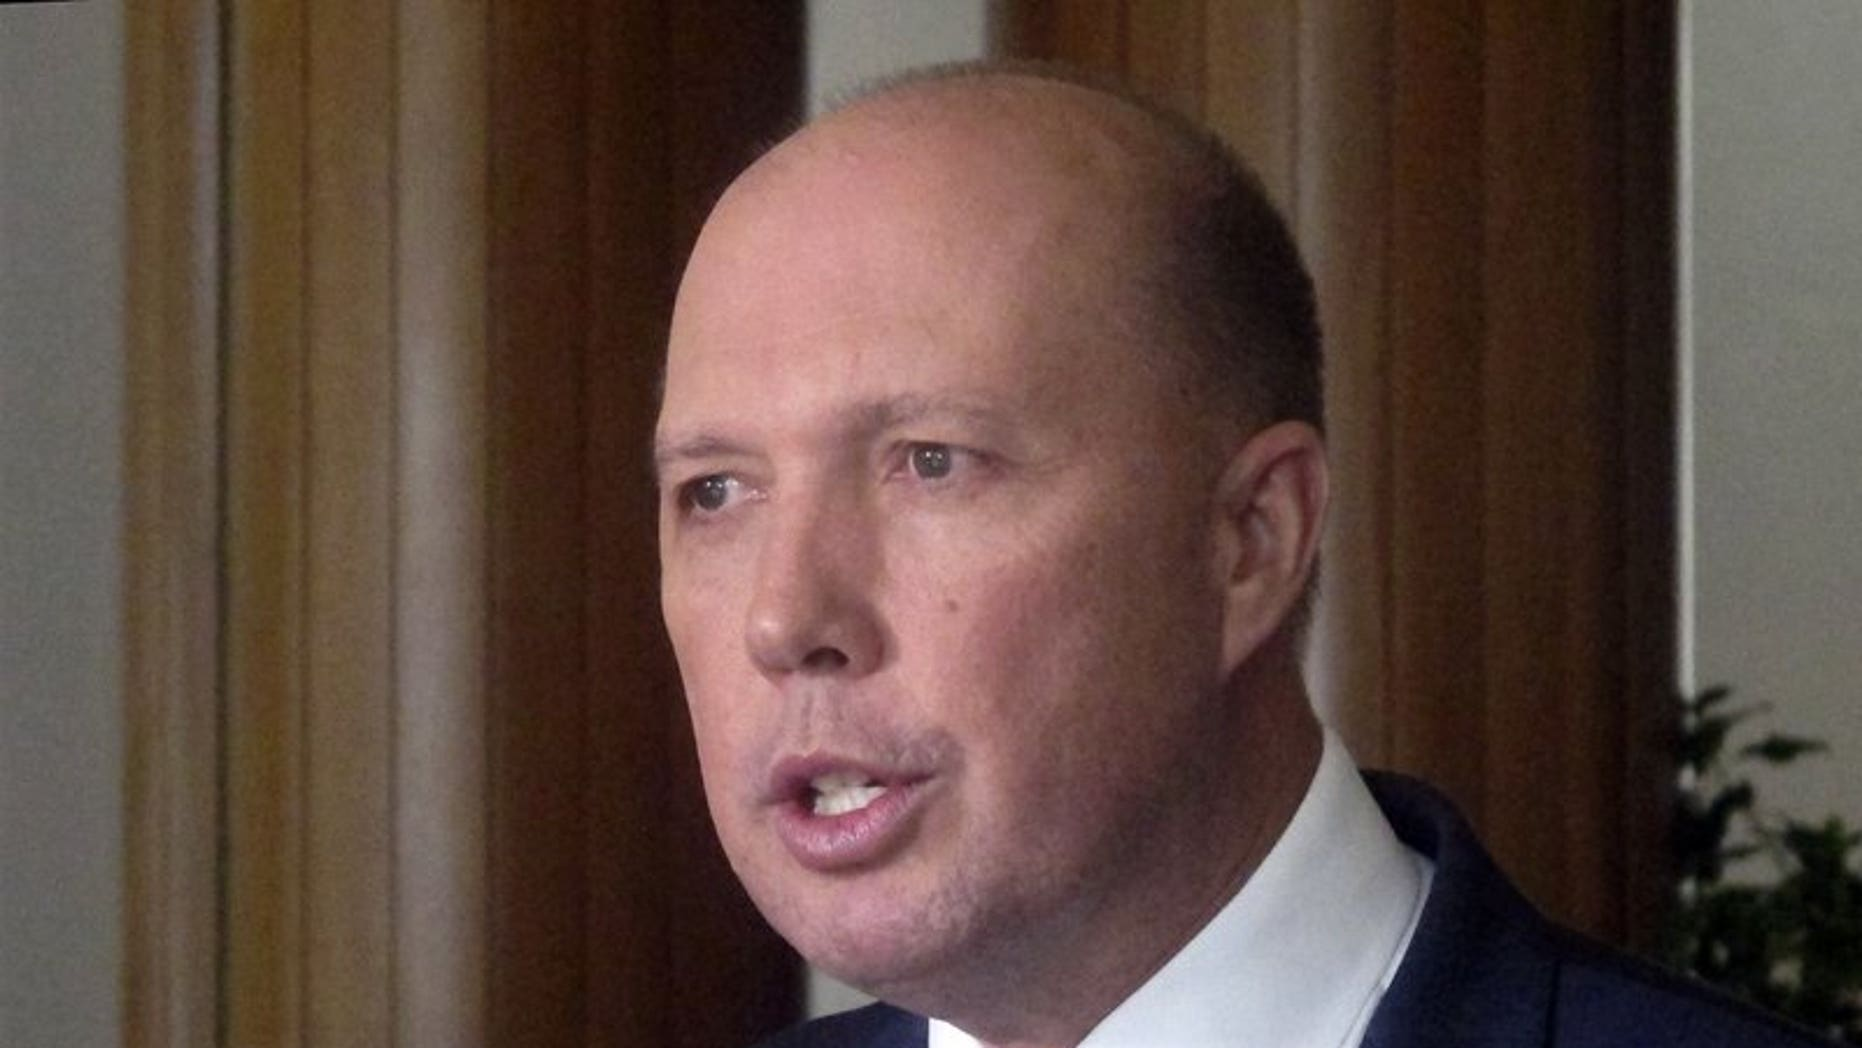 Australia's Immigration and Border Protection Minister Peter Dutton speaks to reporters at Parliament House in Canberra, Australia (AP)